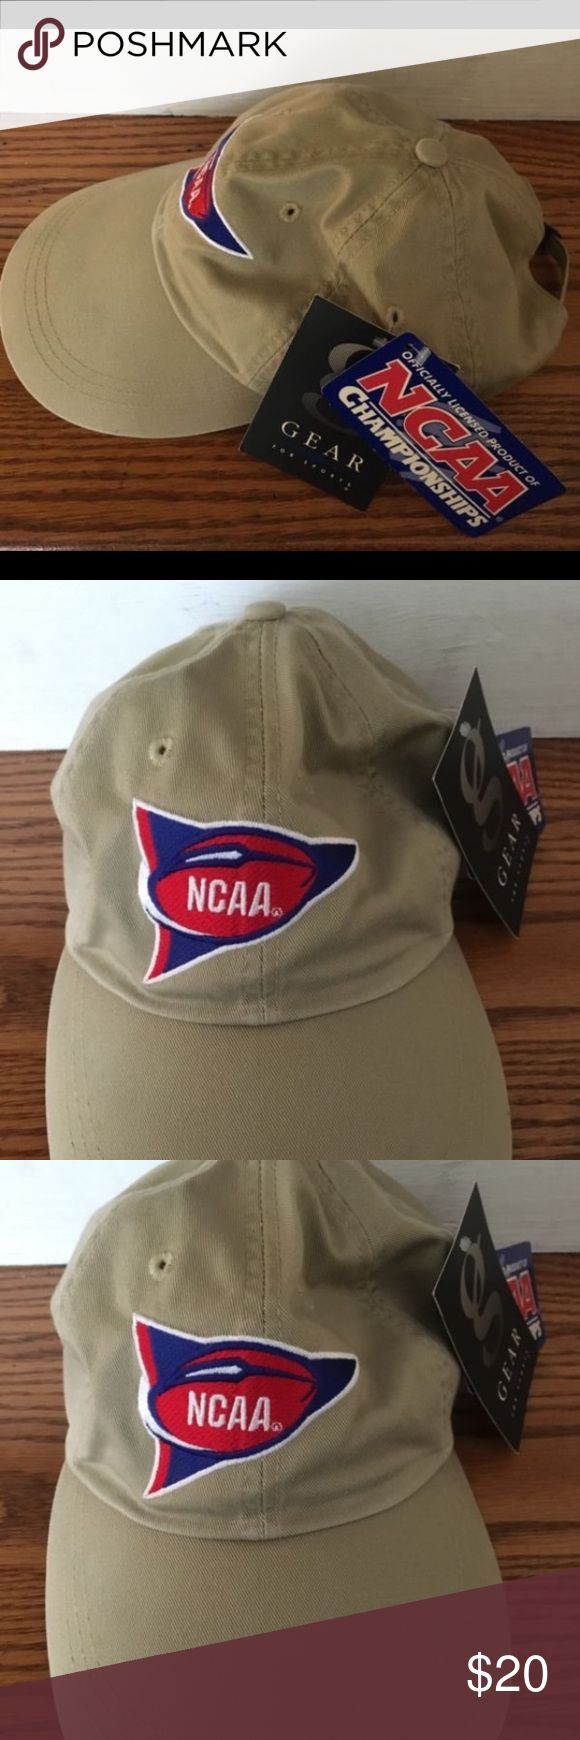 NCAA March Madness basketball Hat CBS Sports NCAA March Madness basketball Hat Cap Black CBS Sports Adjustable new with tags Accessories Hats